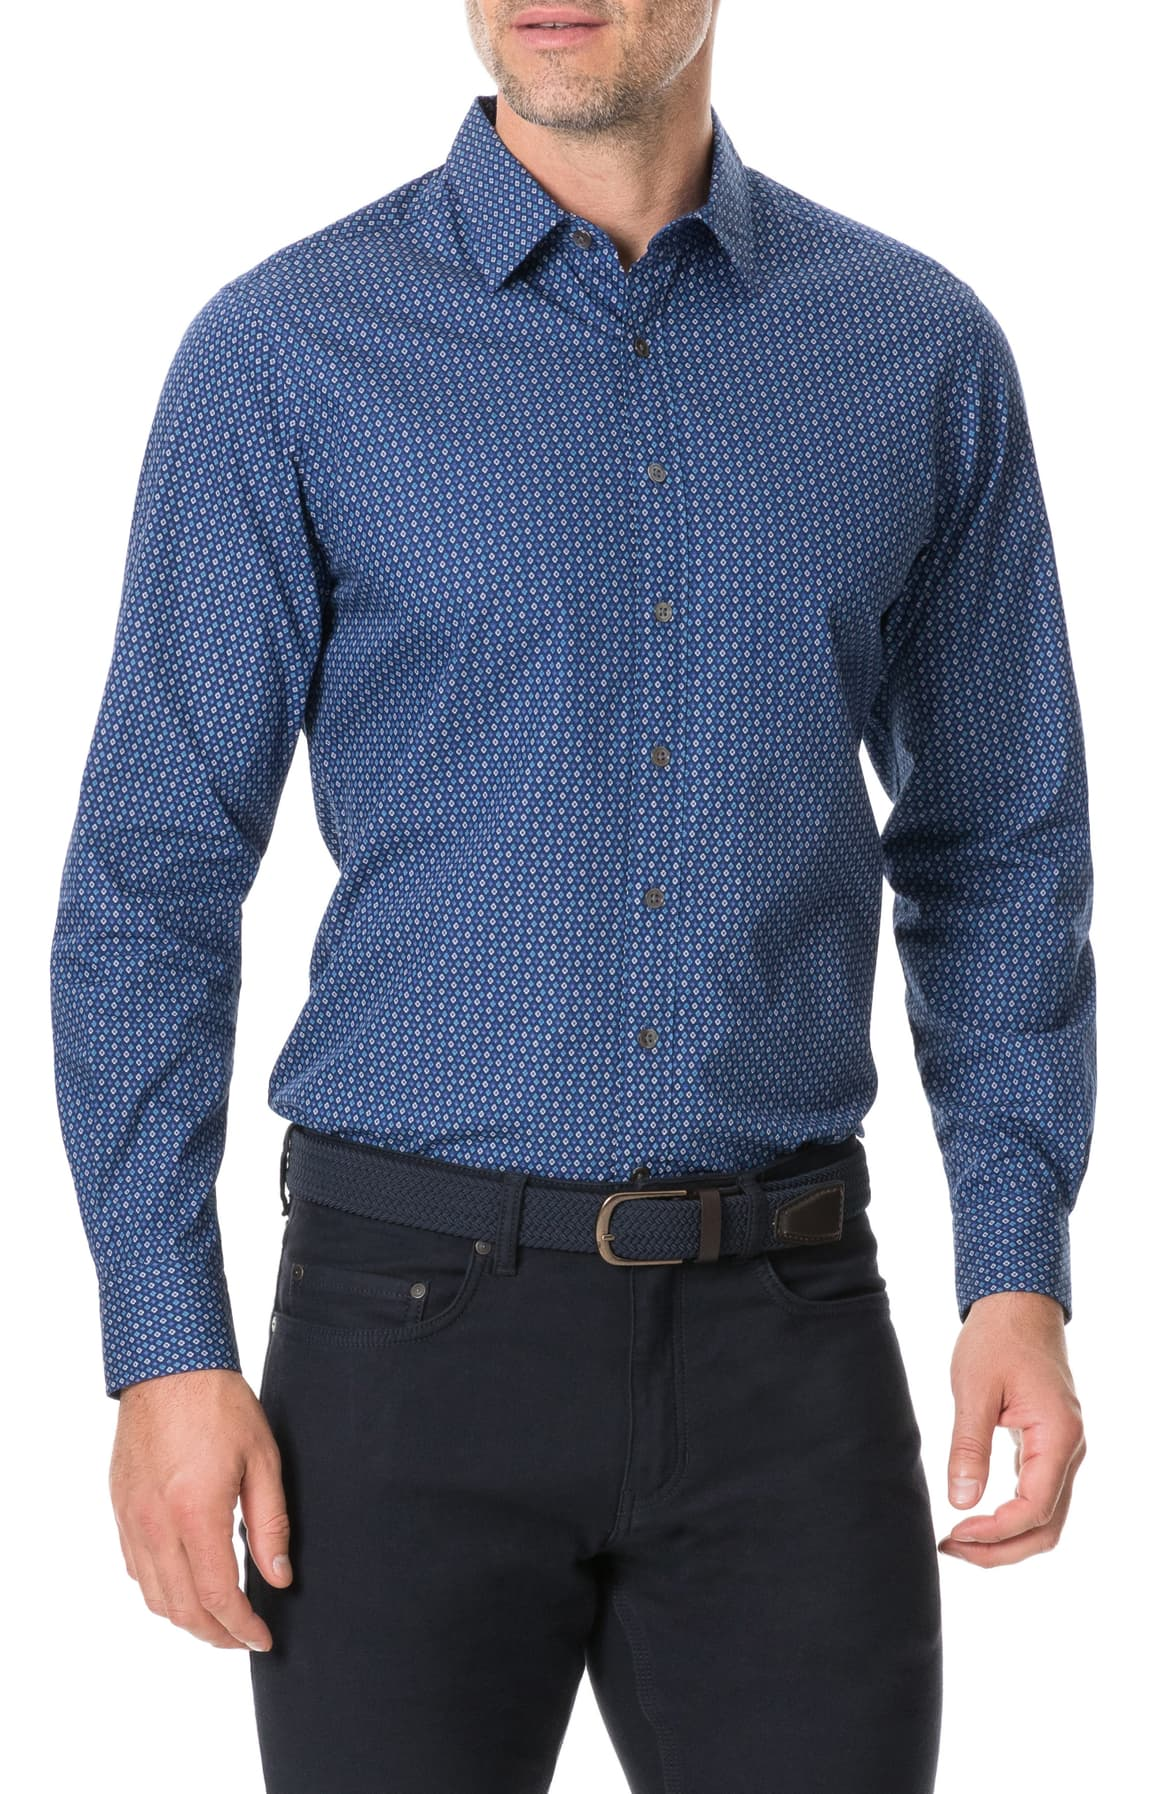 "<p>An eye-catching geo print brings allover polish to a crisp cotton sport shirt cut in a comfortable fit for a look that's both classic and casual. $168.{&nbsp;}<a  href=""https://shop.nordstrom.com/s/rodd-gunn-torrance-street-regular-fit-button-up-shirt/5401515/full?origin=keywordsearch-personalizedsort&breadcrumb=Home%2FAll%20Results&color=marine"" target=""_blank"" title=""https://shop.nordstrom.com/s/rodd-gunn-torrance-street-regular-fit-button-up-shirt/5401515/full?origin=keywordsearch-personalizedsort&breadcrumb=Home%2FAll%20Results&color=marine"">Shop it{&nbsp;}</a>(Image: Nordstrom){&nbsp;}</p>"